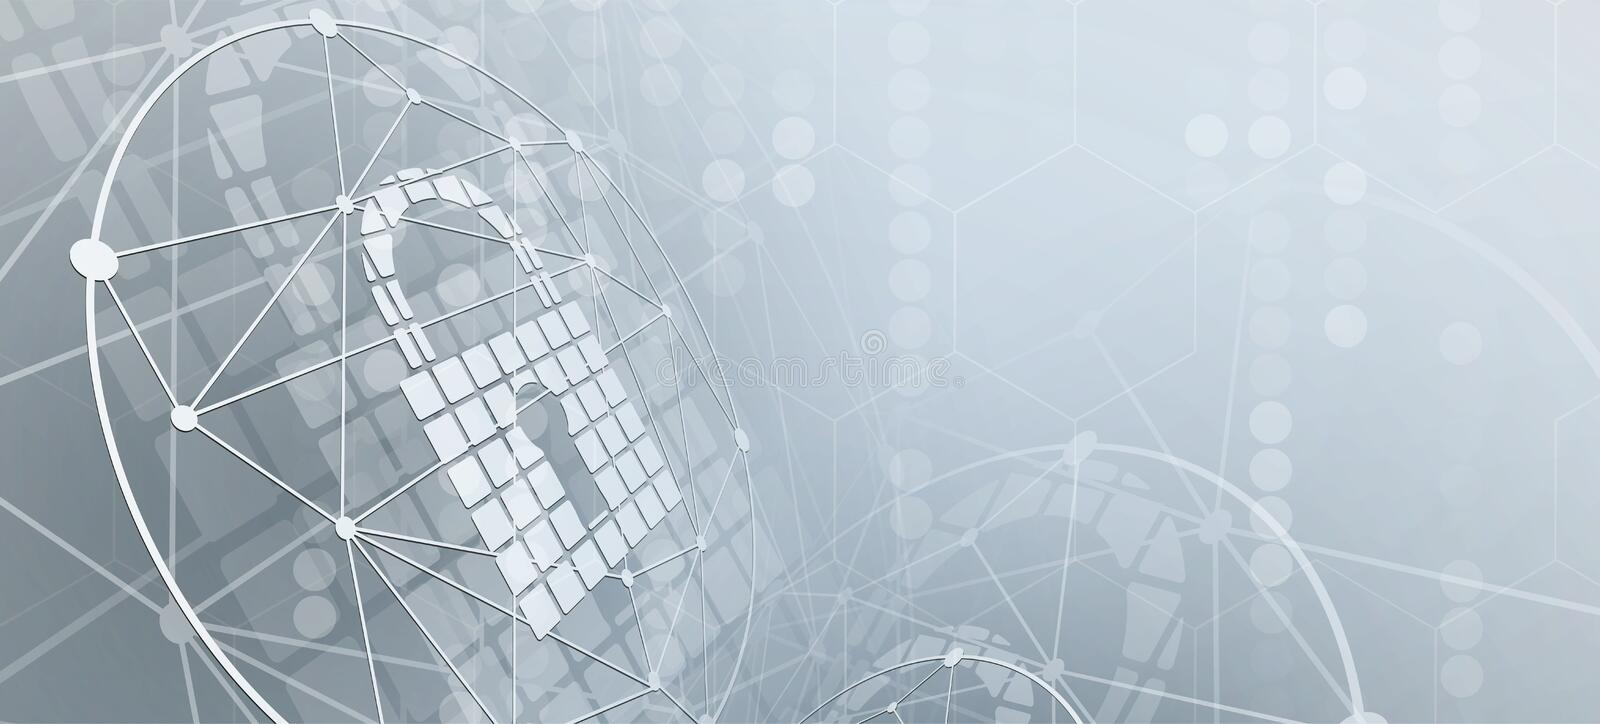 Cyber security and information or network protection. Future technology web services for business and internet project. Cyber security and information or network royalty free illustration